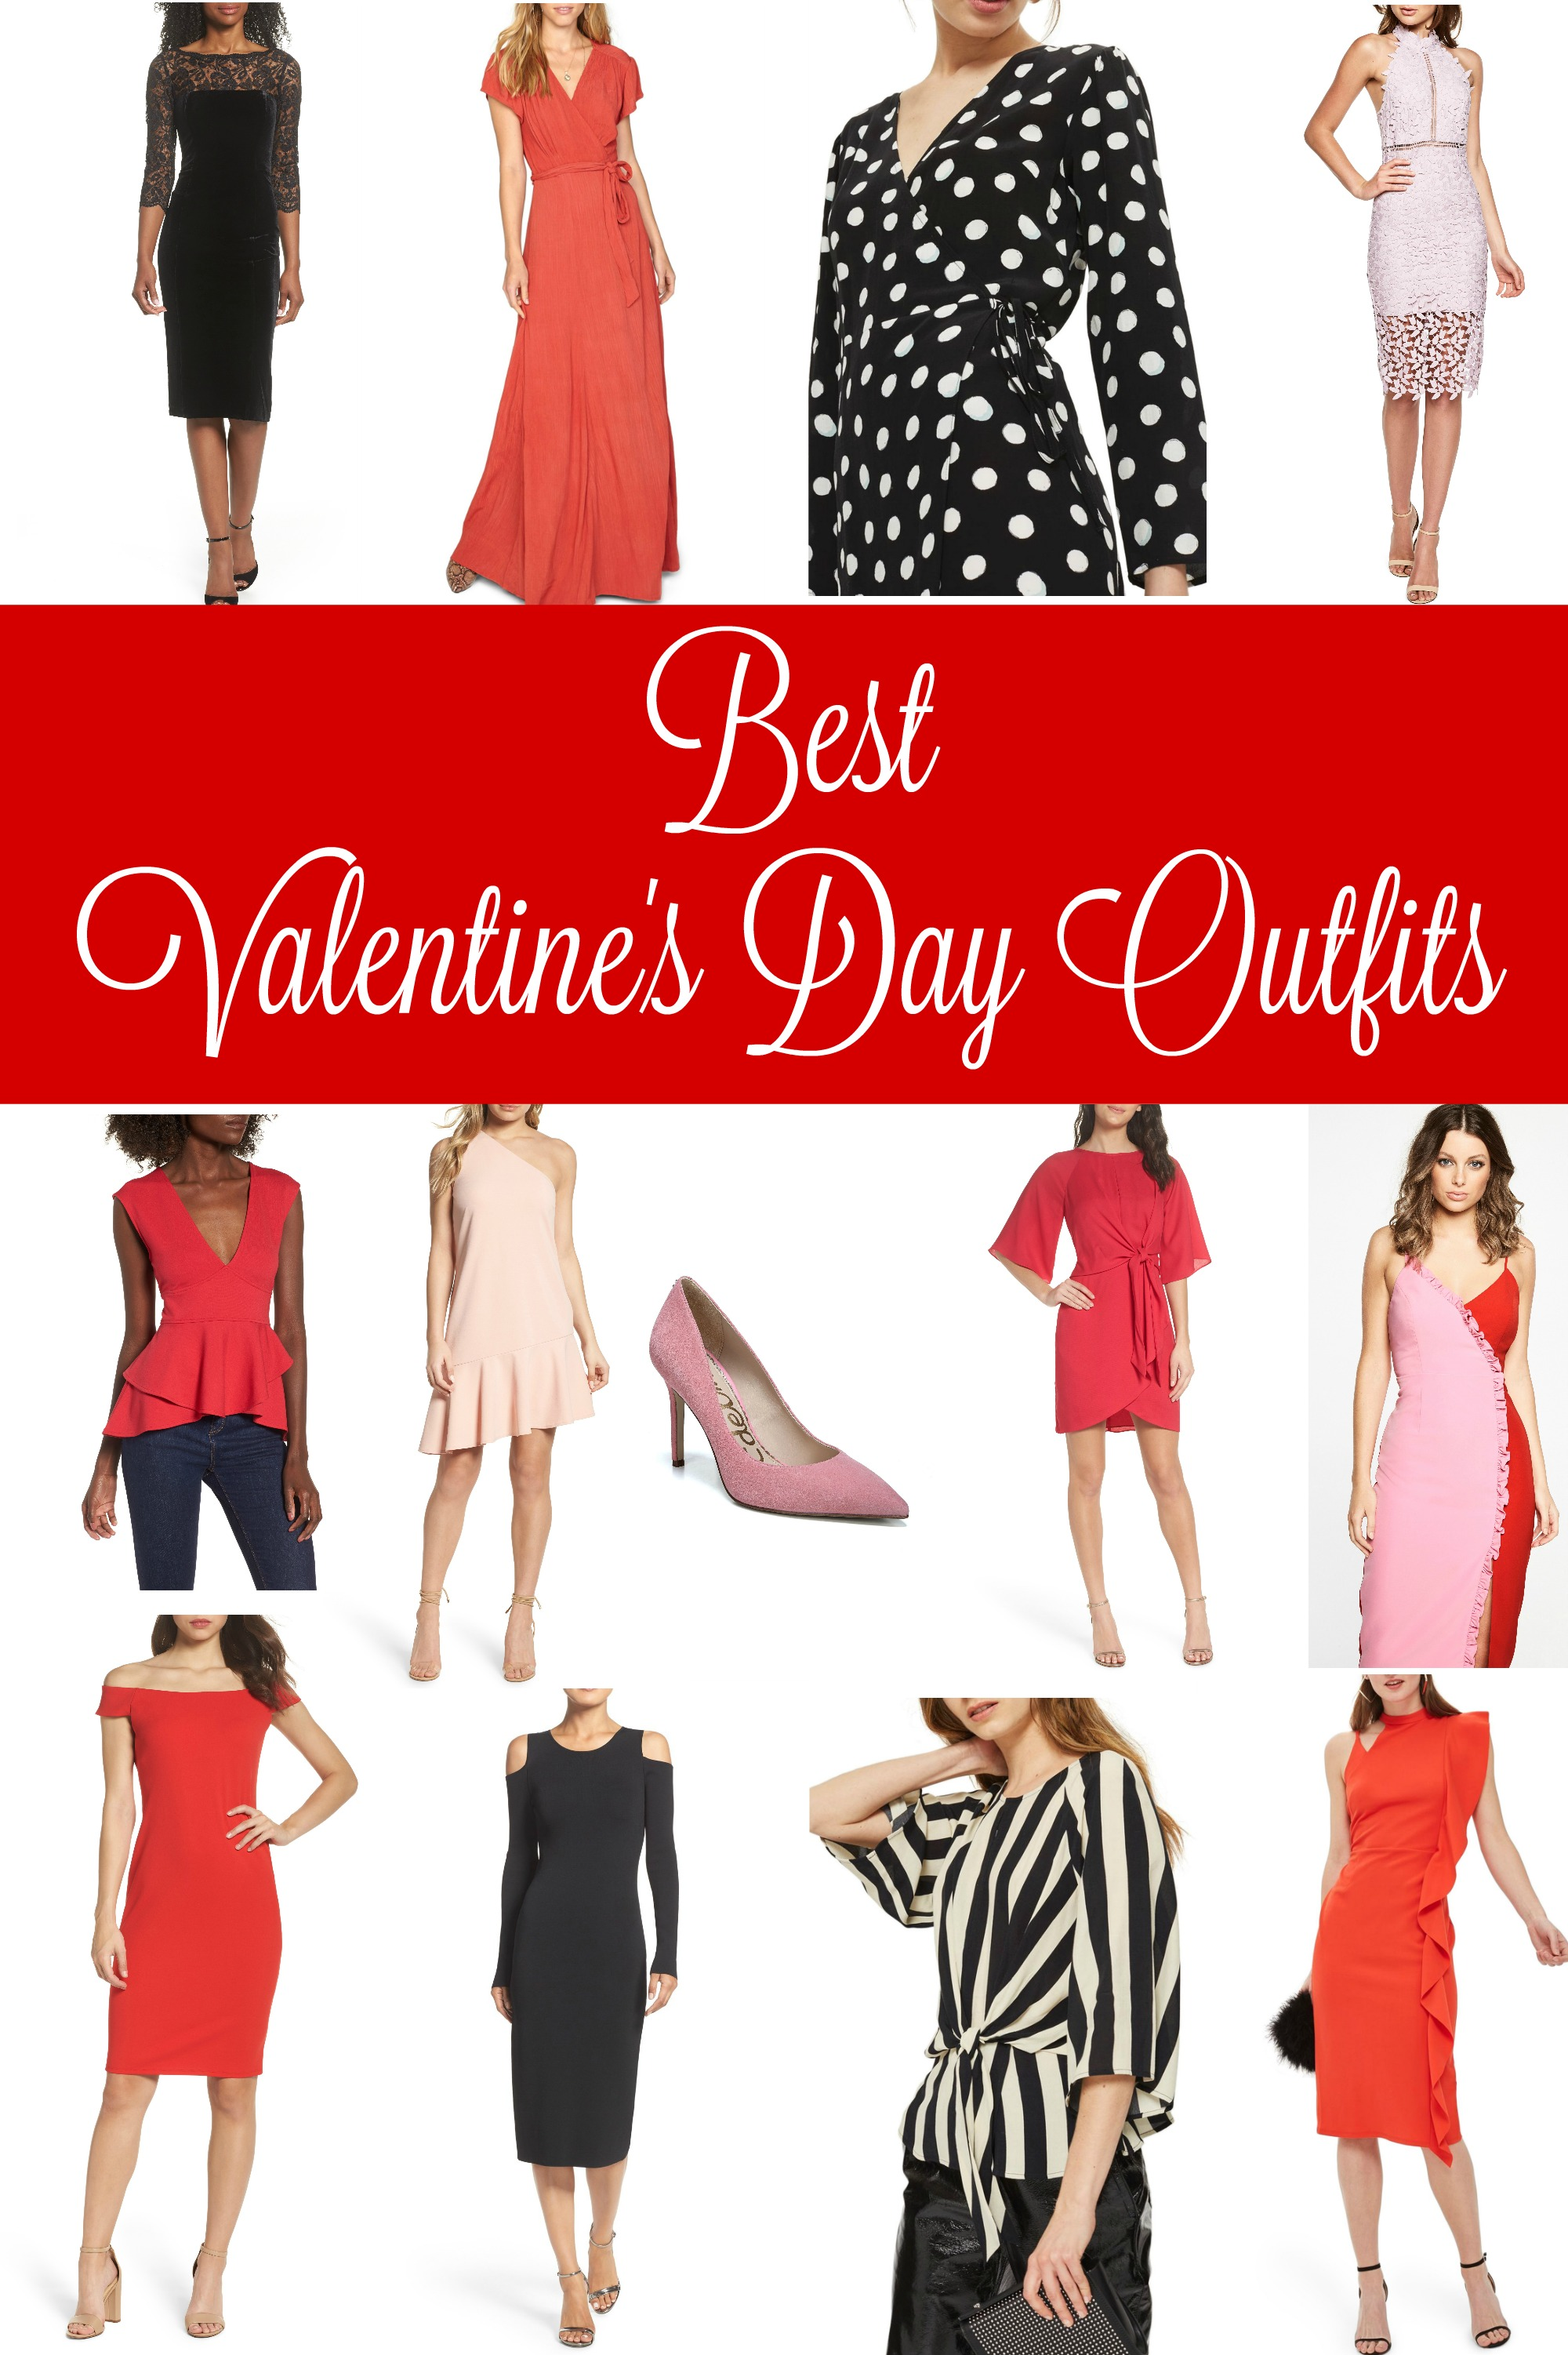 Valentineu0026#39;s Day Outfit Ideas - Daily Dose Of Style